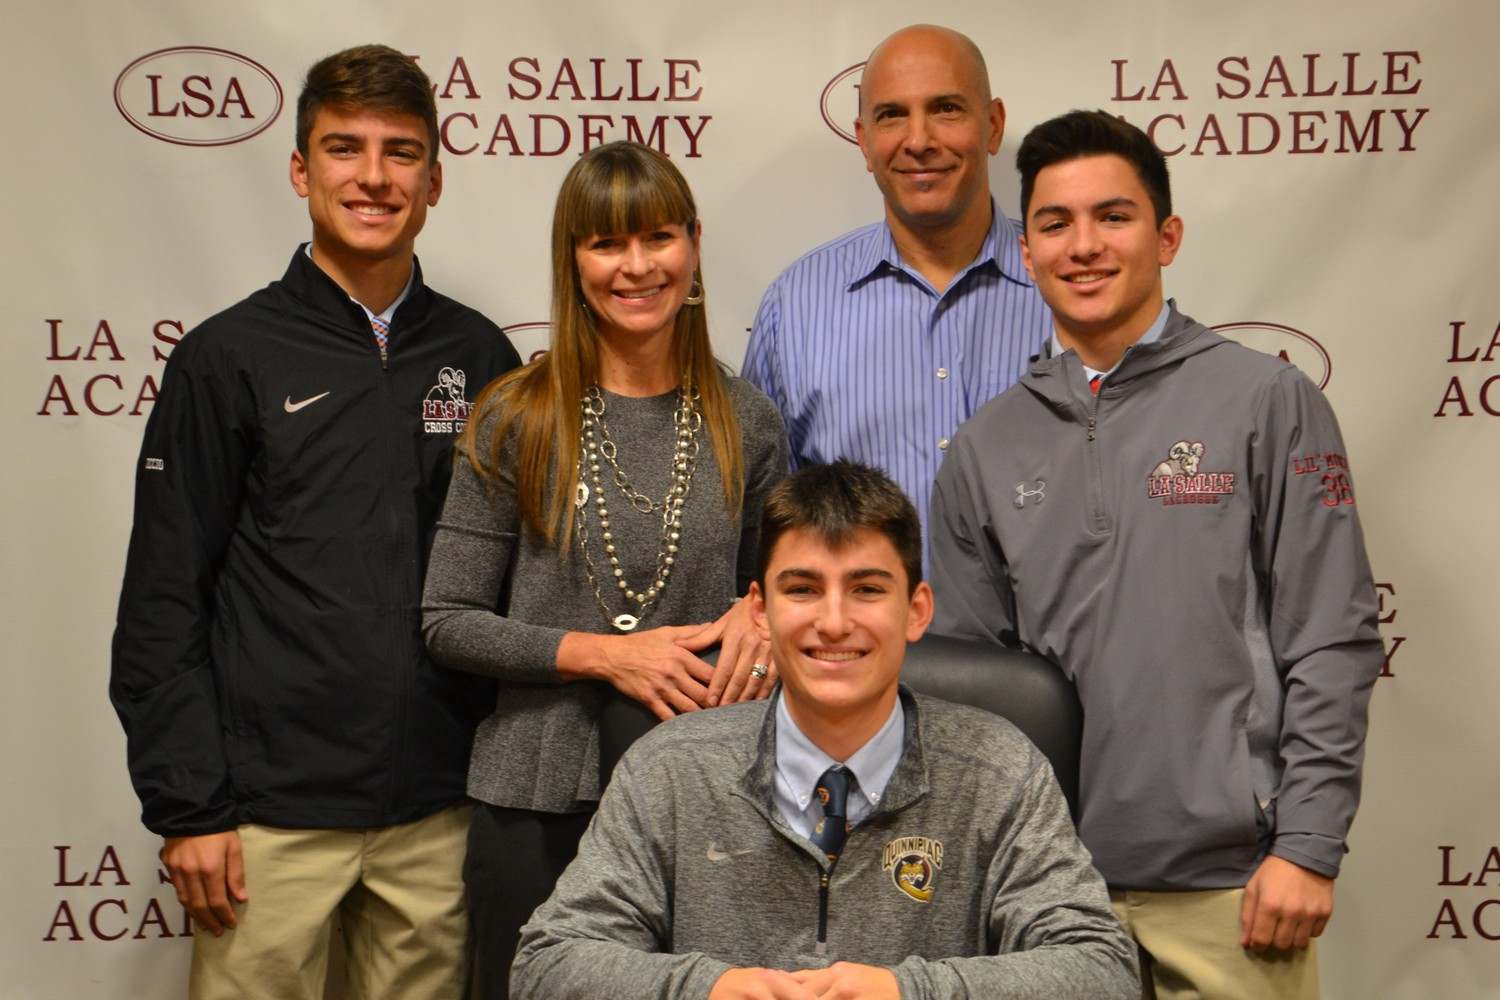 Pictured with Nicholas are his parents Kristen and Joseph DiMuccio and his brothers Maxwell and Zachary, LaSalle Academy Class of 2020.